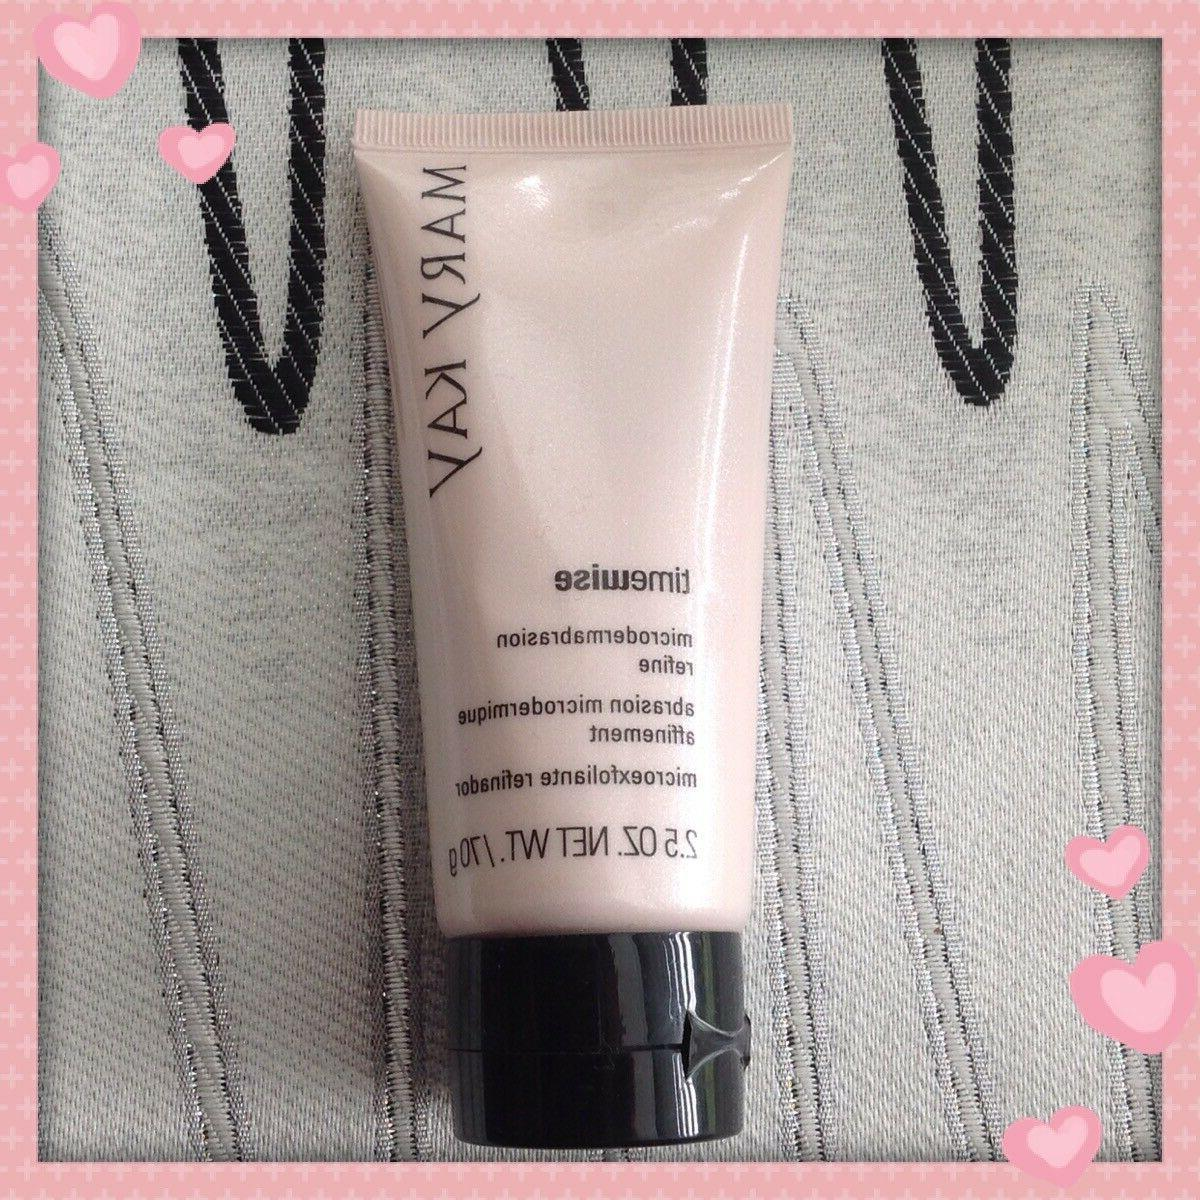 new no box timewise microdermabrasion refine full